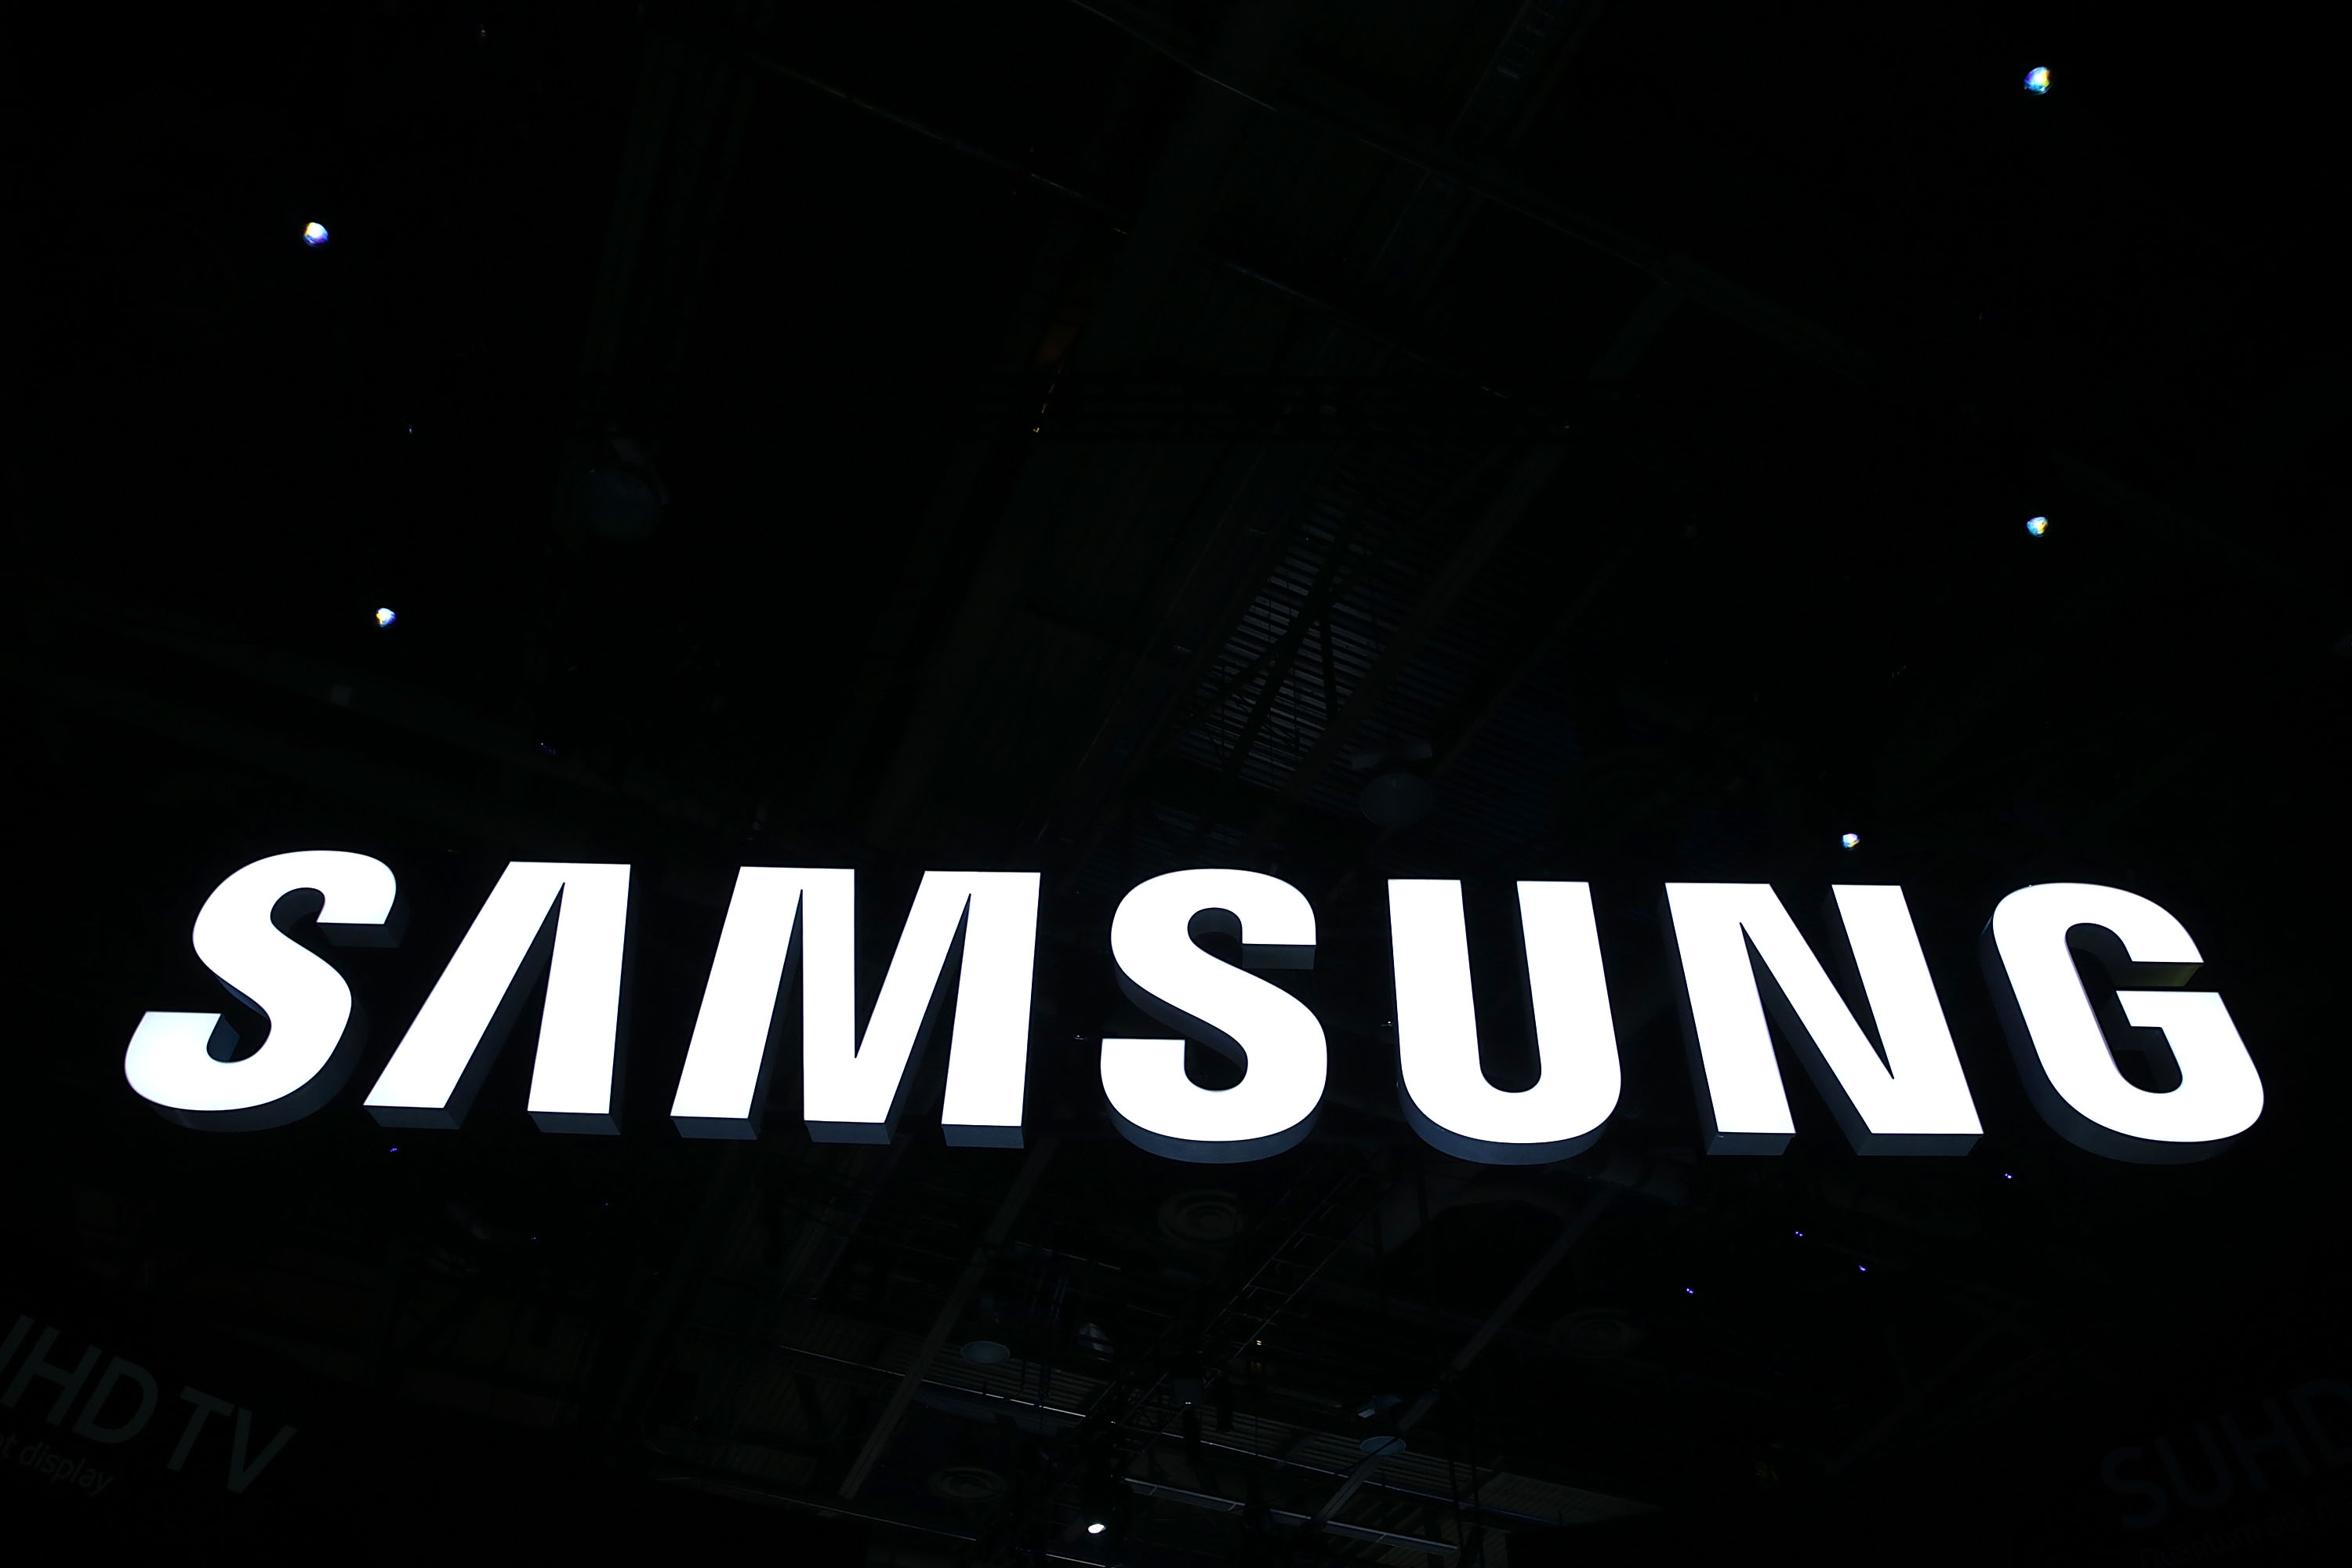 The Samsung logo is seen at CES 2016 at the Las Vegas Convention Center on January 6, 2016 in Las Vegas, Nevada.